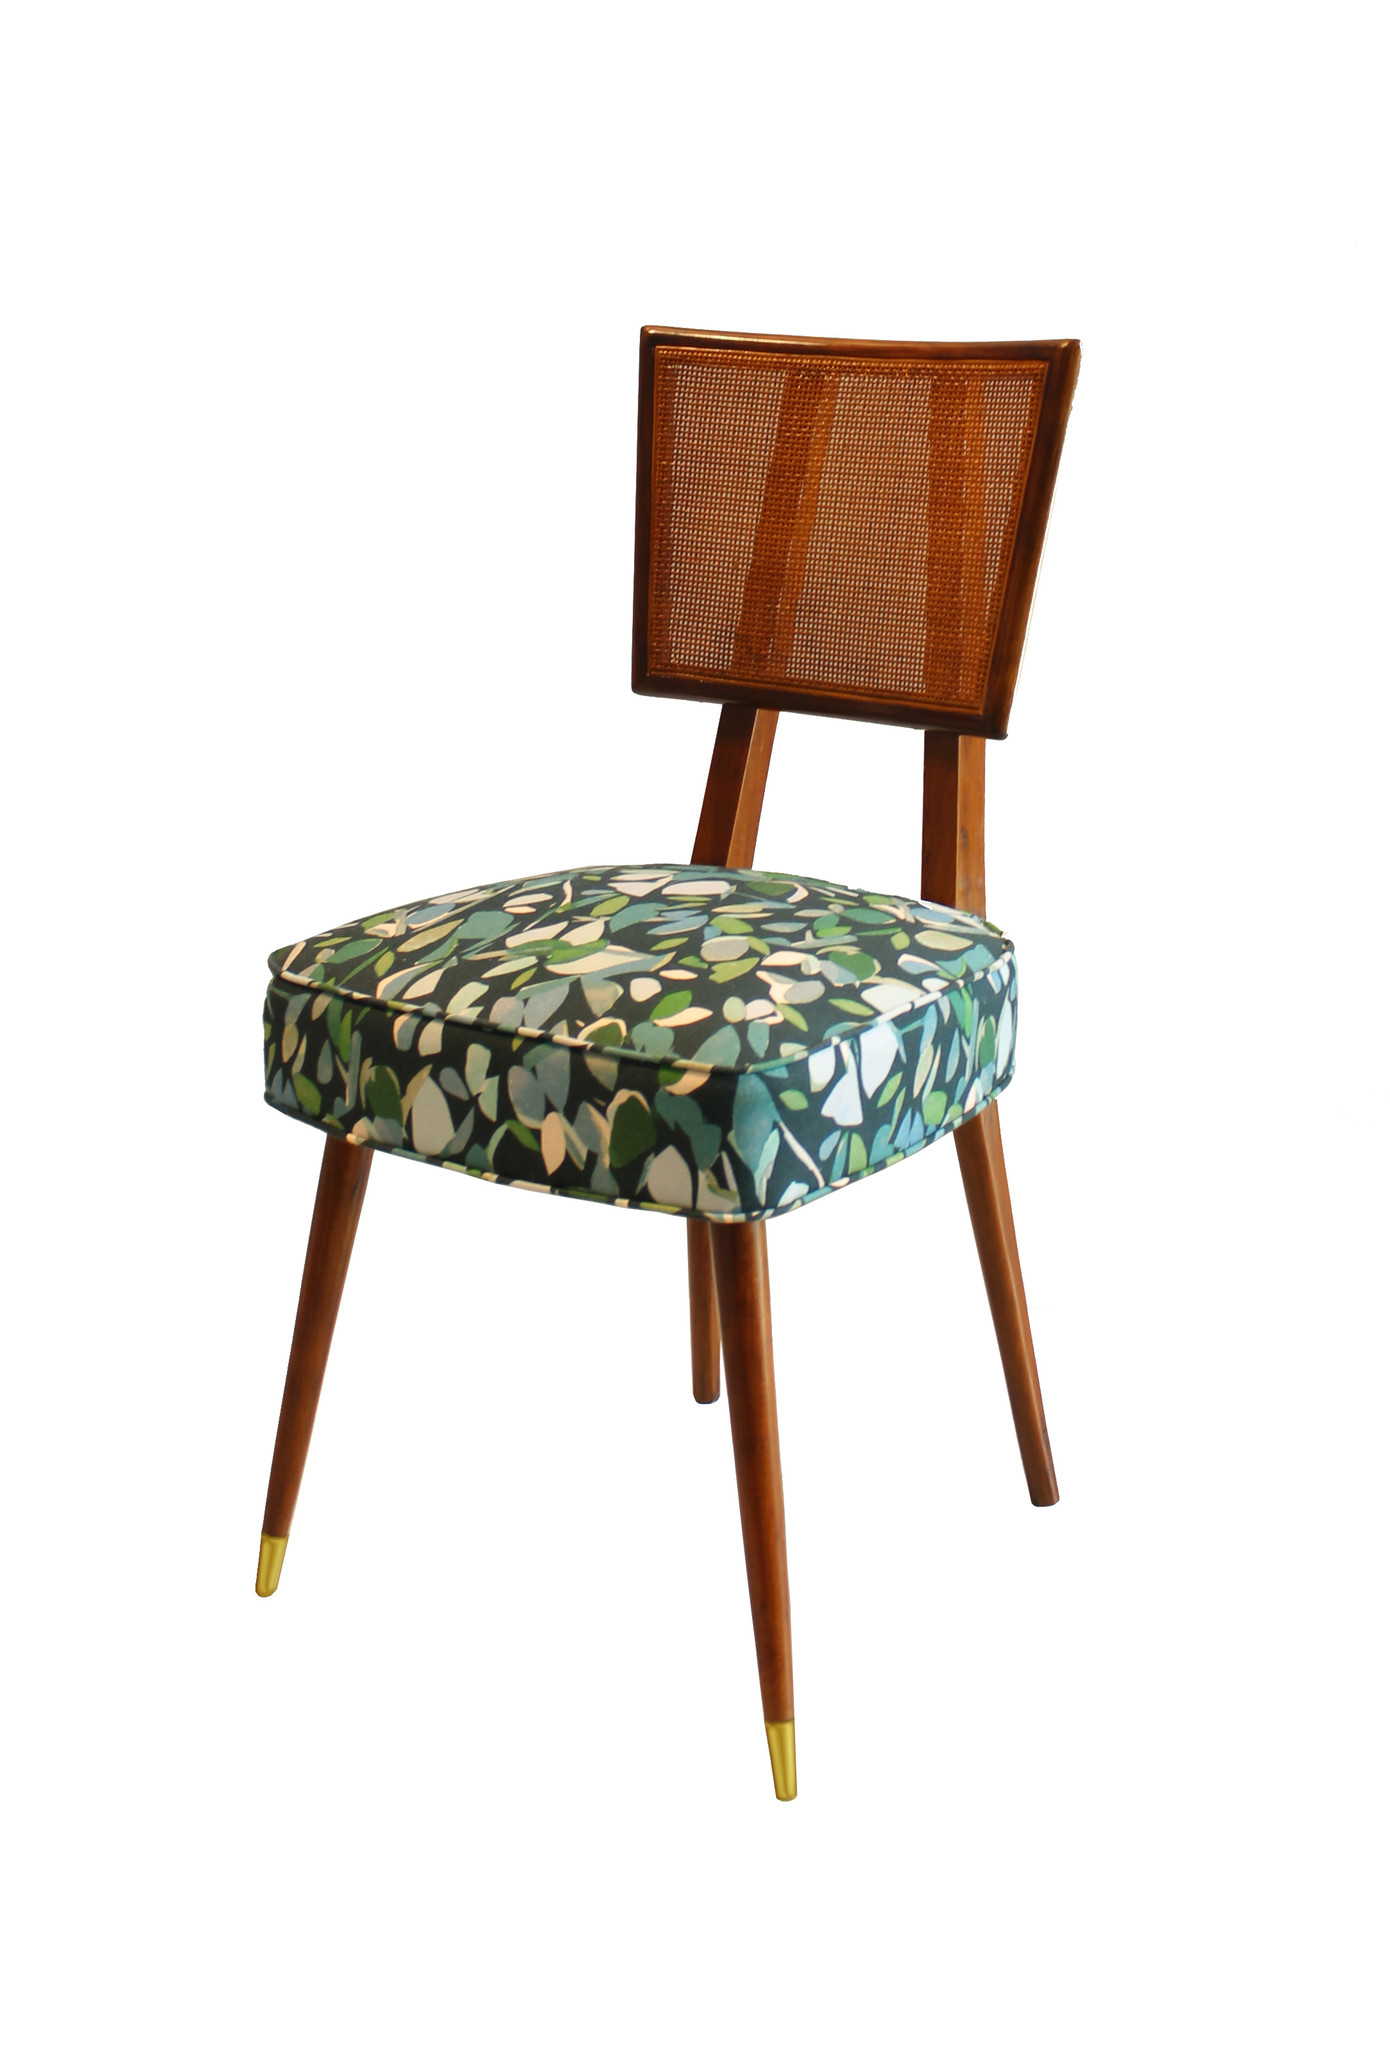 Edward Wormley/Dunbar Midcentury Dining Chairs in the Manner of Dunbar (Set of 6)